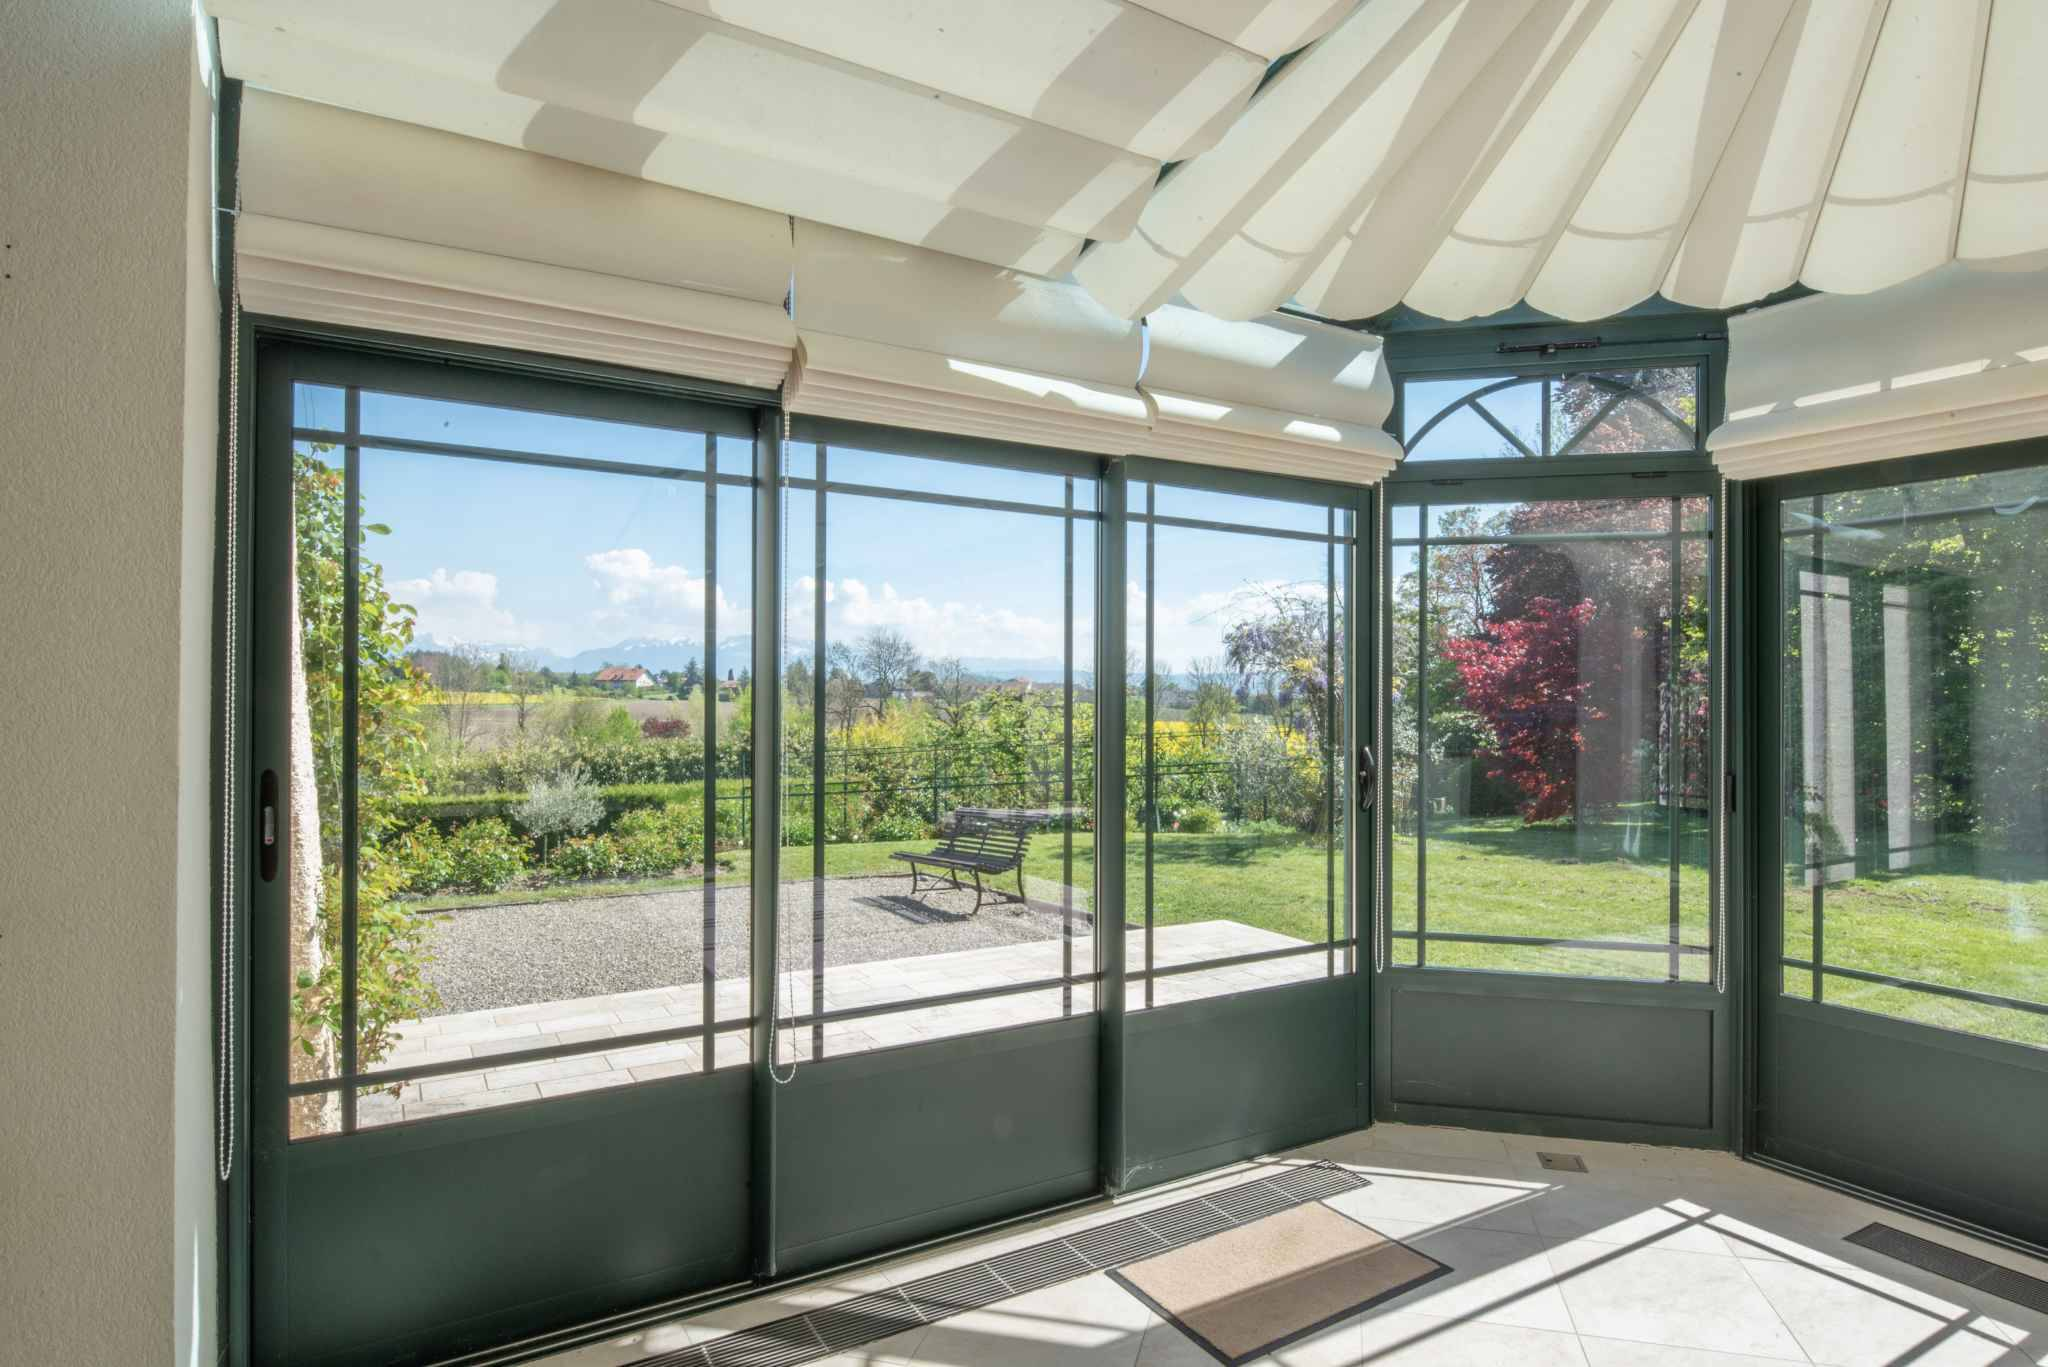 Home with commanding countryside view